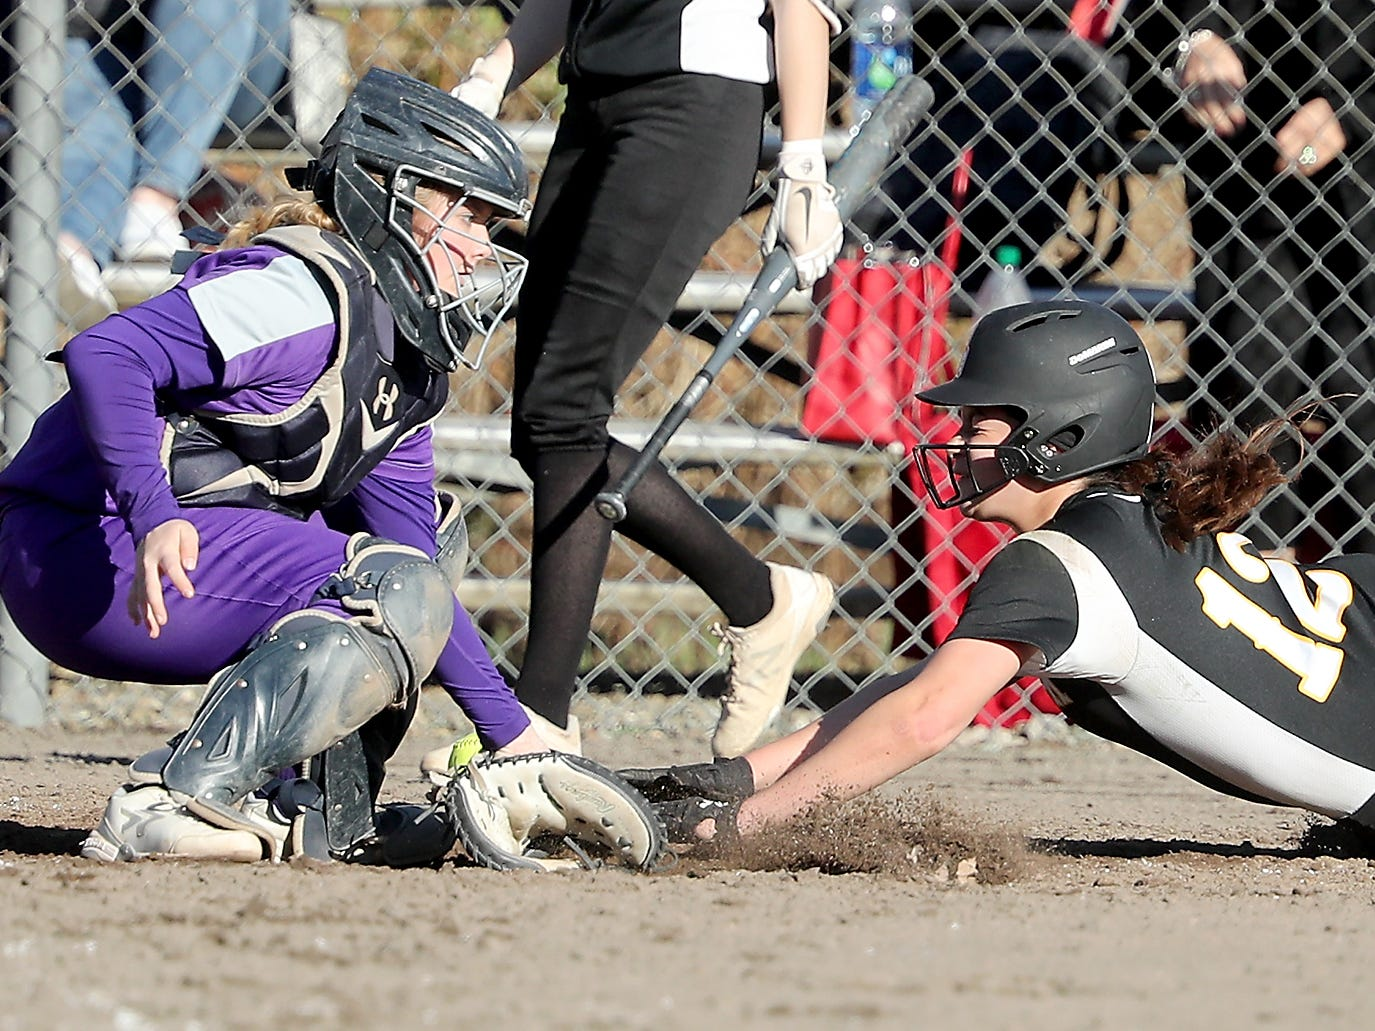 South Kitsap's Sarah Hoyt (12) dives into home and beats the throw to Puyallup's Sierra Edwards on Tuesday, March 26, 2019.